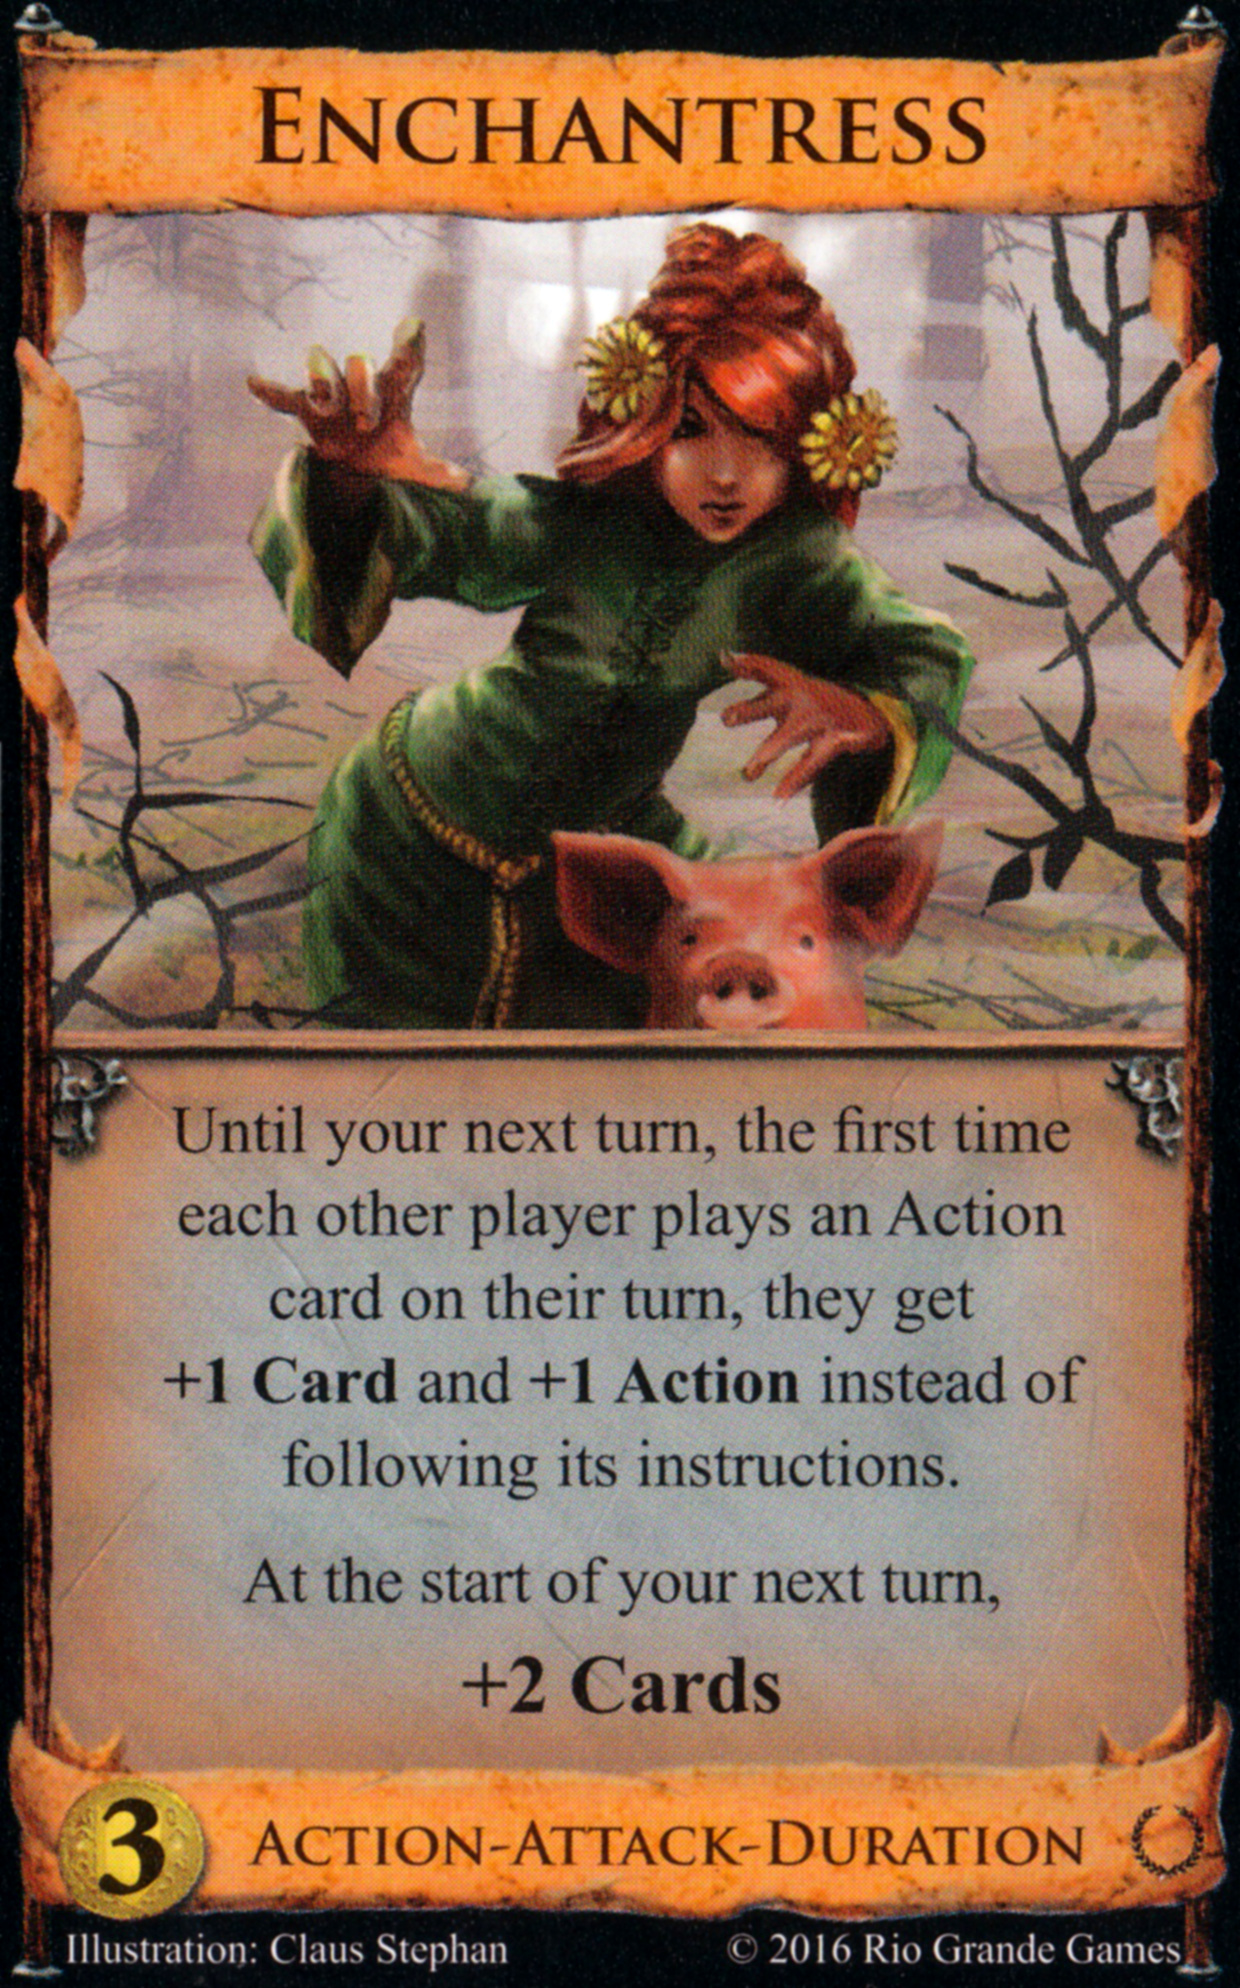 Enchantress ($3): Action-Attack-Duration: Until your next turn, the first time each other player plays an Action card on their turn, they get +1 Card and +1 Action instead of following its instructions. At the start of your next turn, +2 Cards